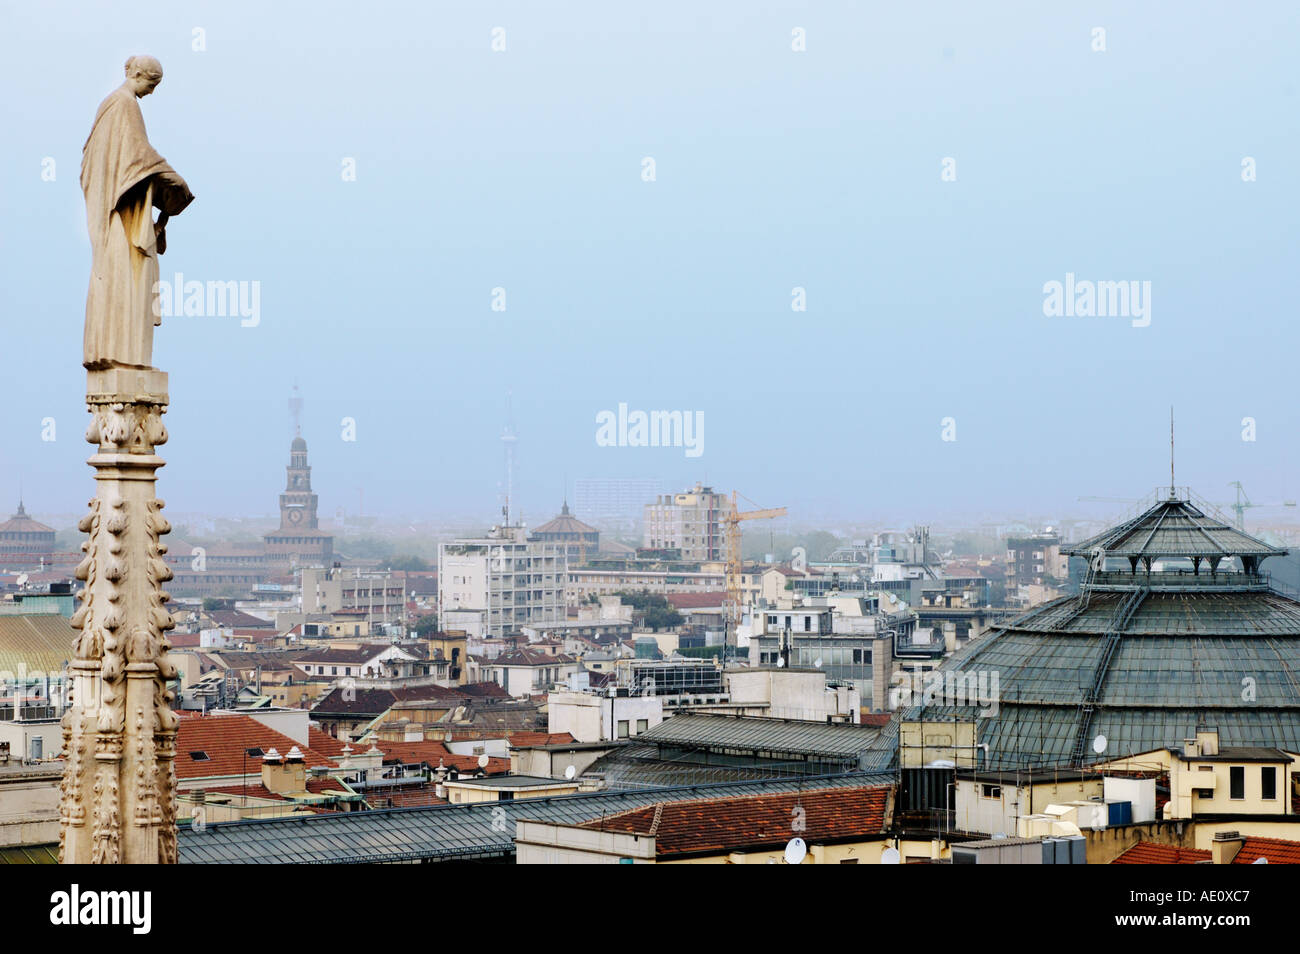 Italy, Milan, Statue and View of Milan from the Rooftop of the Duomo Stock Photo